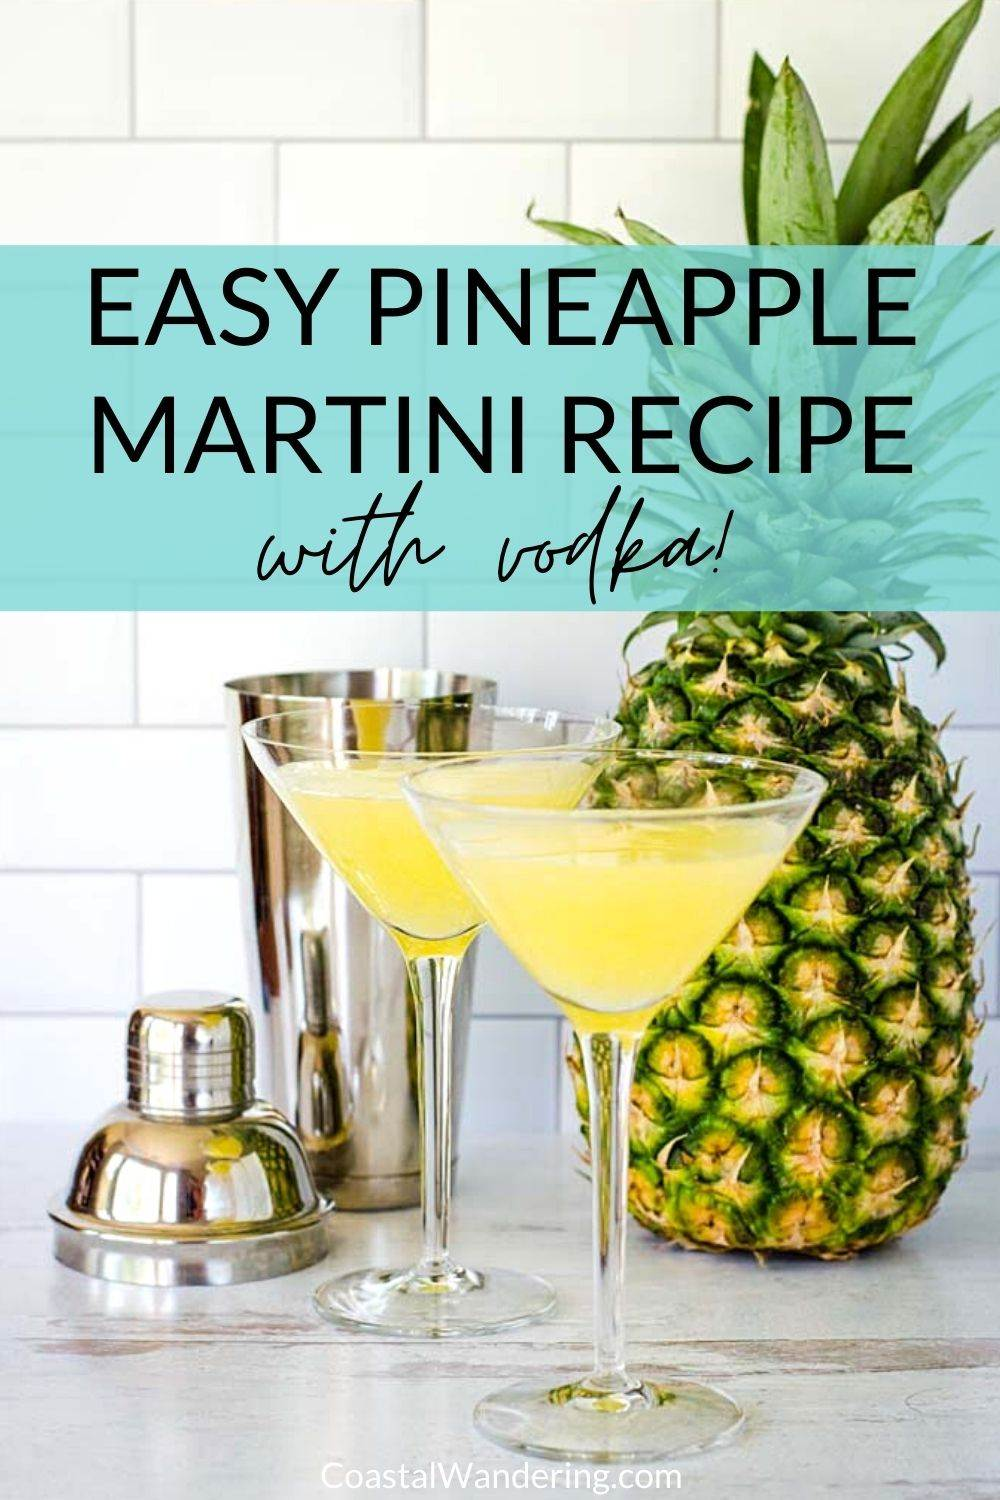 Easy Pineapple Martini To Take You Back To The Islands